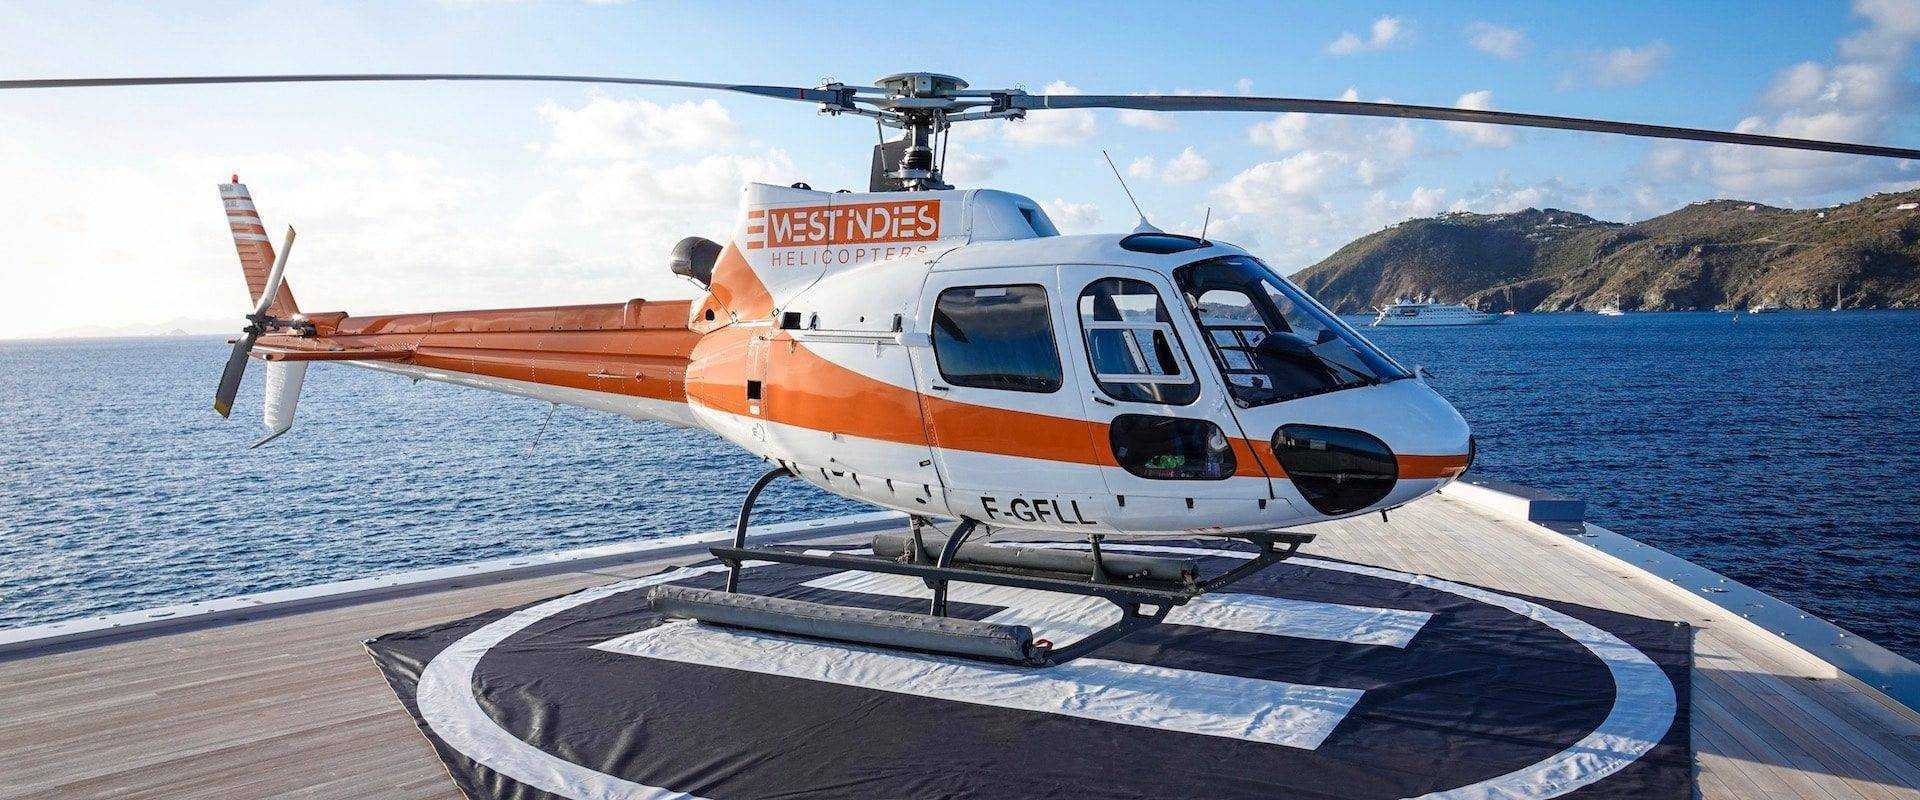 5-West-Indies-Helicoptere-St-Barth